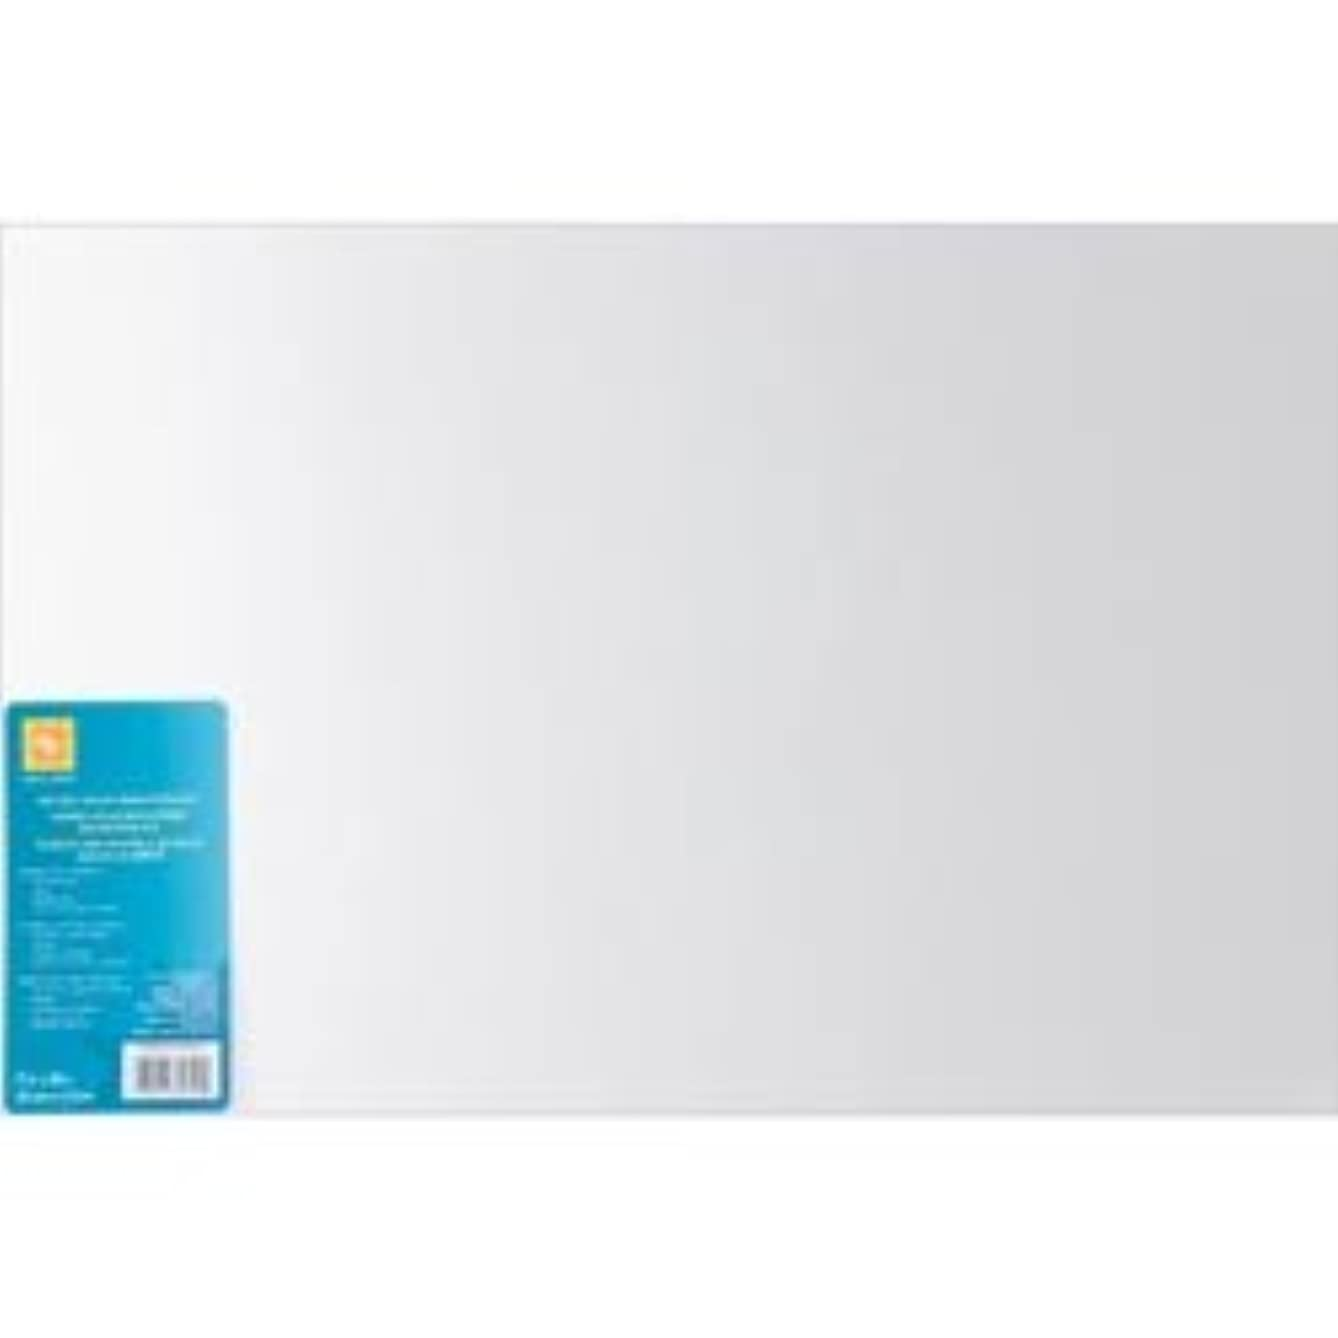 Bulk Buy: Wrights Quilterin.s No Melt Mylar Template 12in. x 18in. 670050 (5-Pack)